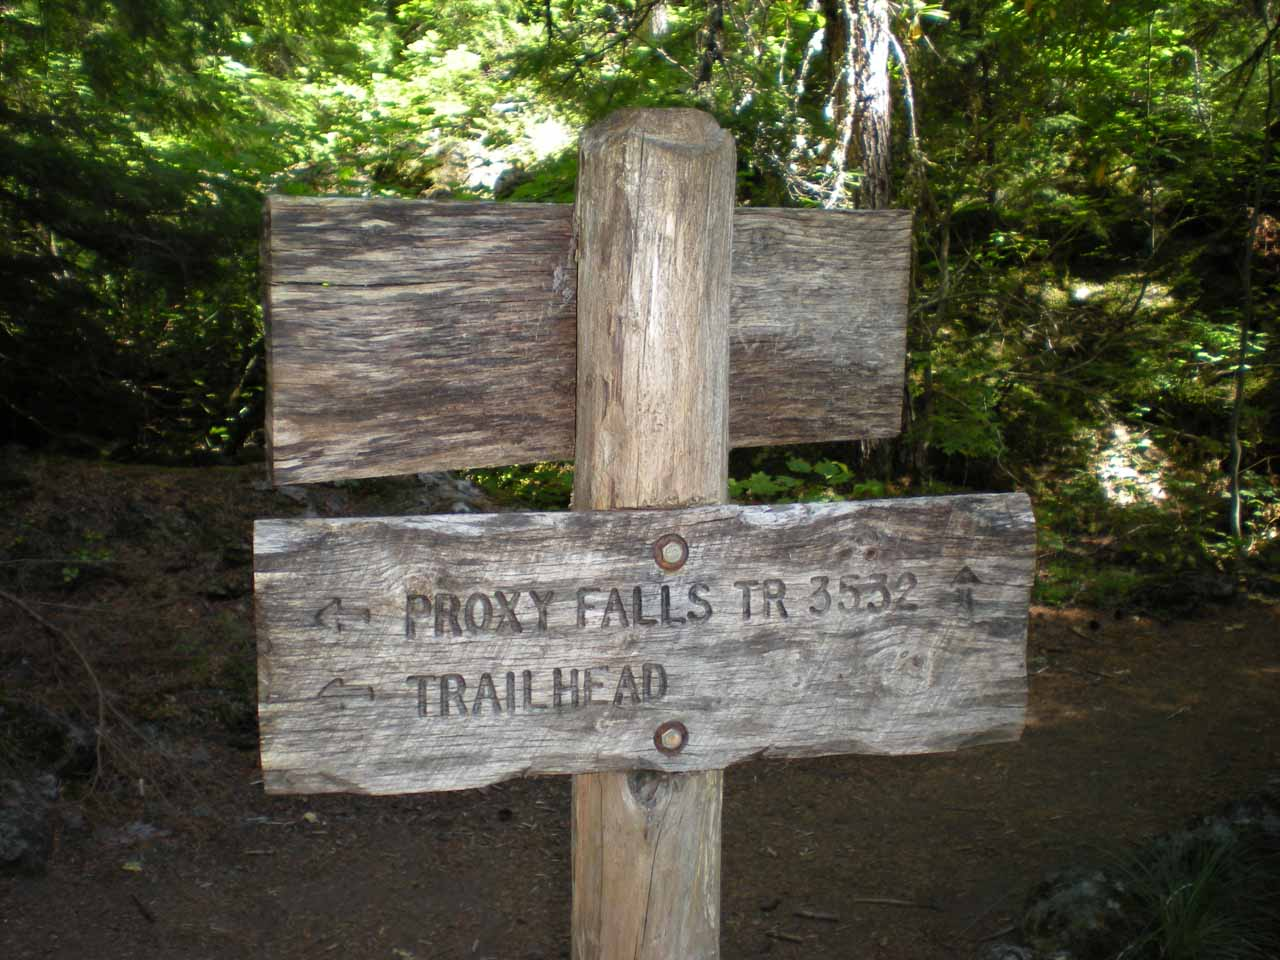 We got a little confused at this sign about which trail went where